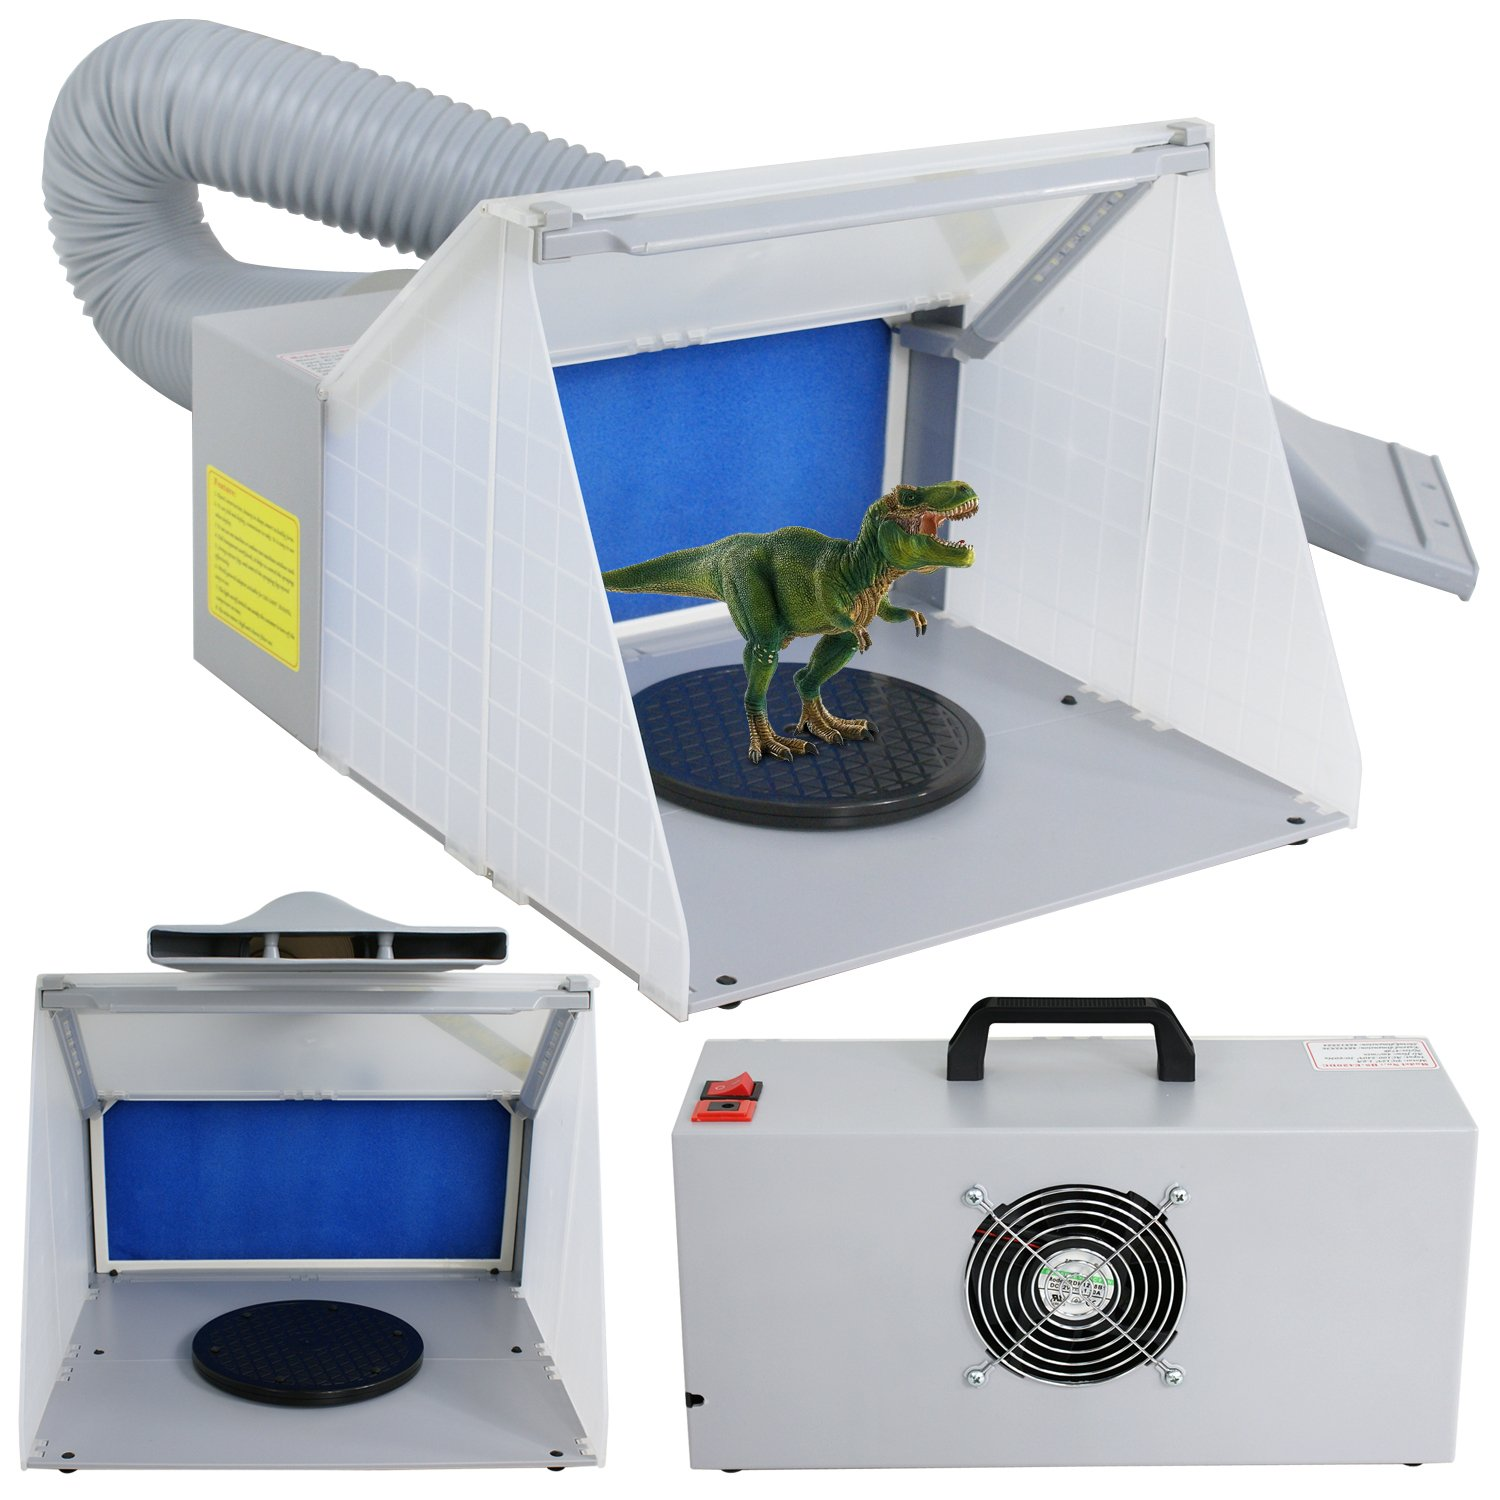 ZENY LED Lighting Hobby Airbrush Spray Booth Kit w/Fun for Painting Art, Cake, Craft, Hobby, Nails, T-shirts, w/3 LED